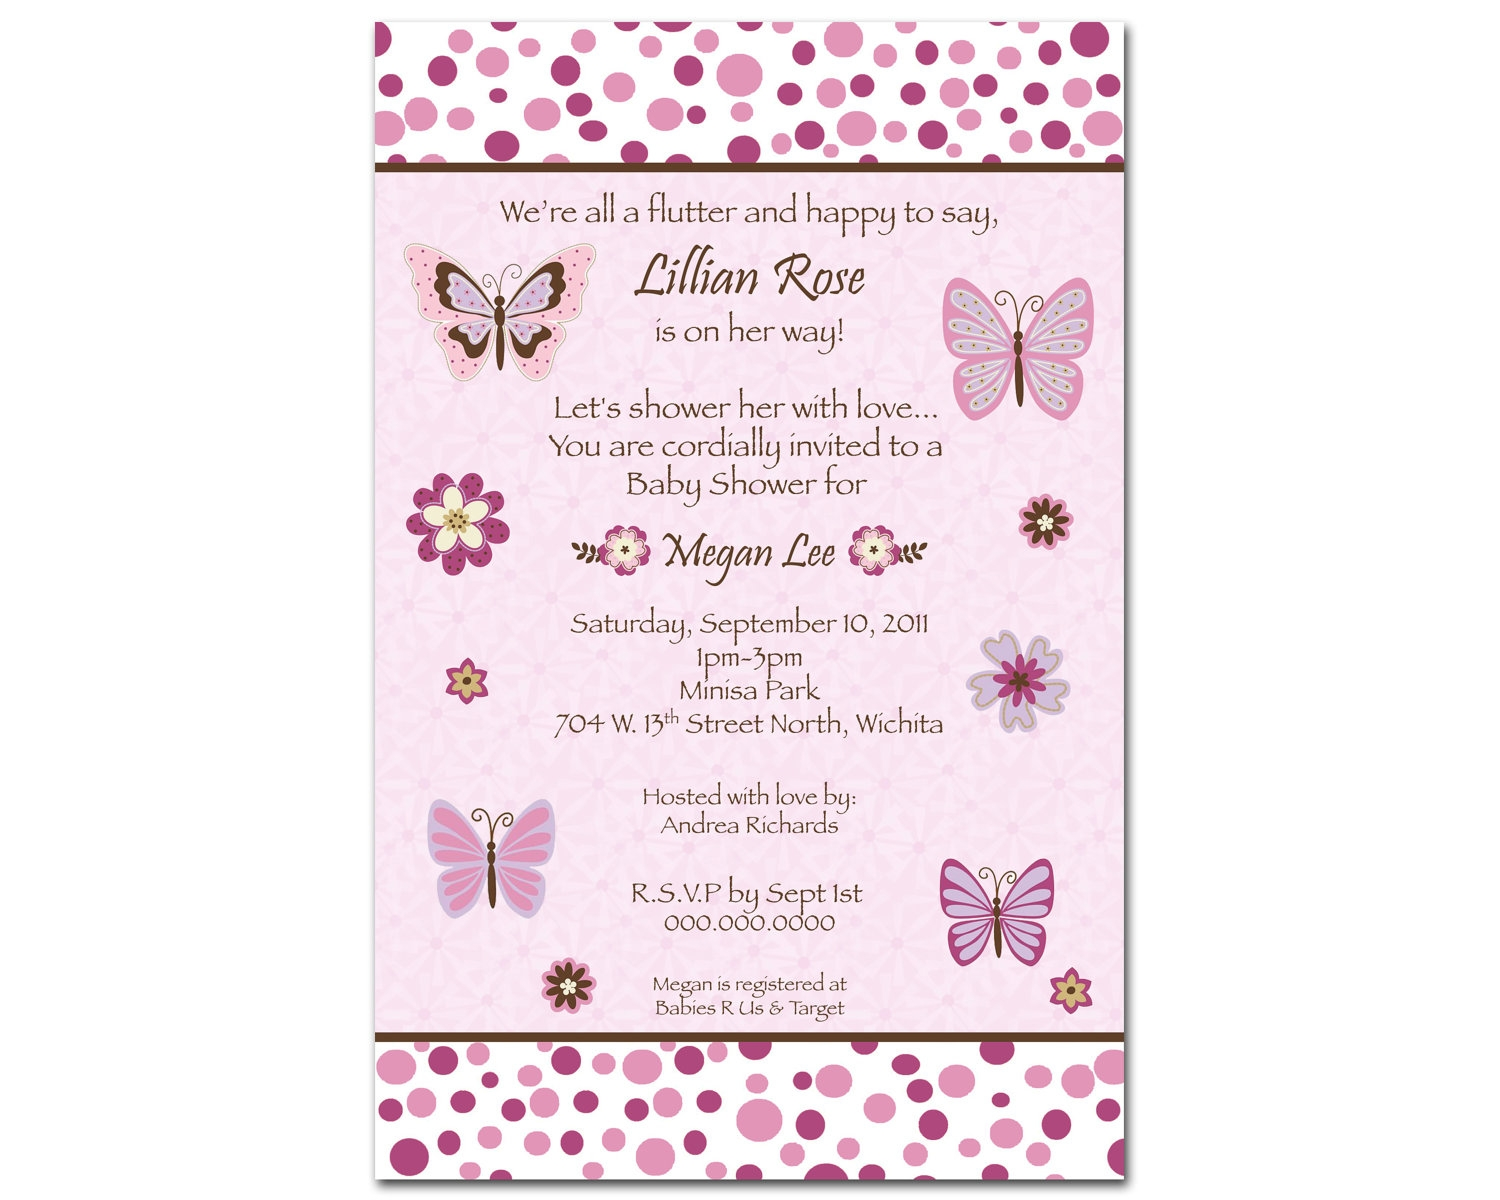 Full Size of Baby Shower:delightful Baby Shower Invitation Wording Picture Designs Baby Shower Invitation Wording Baby Shower Snapchat Filter Baby Shower Outfit Guest Para Baby Shower Baby Shower Halls Baby Shower Invitations Awesome Baby Shower Invitation Wording 43 Wyllieforgovernor For